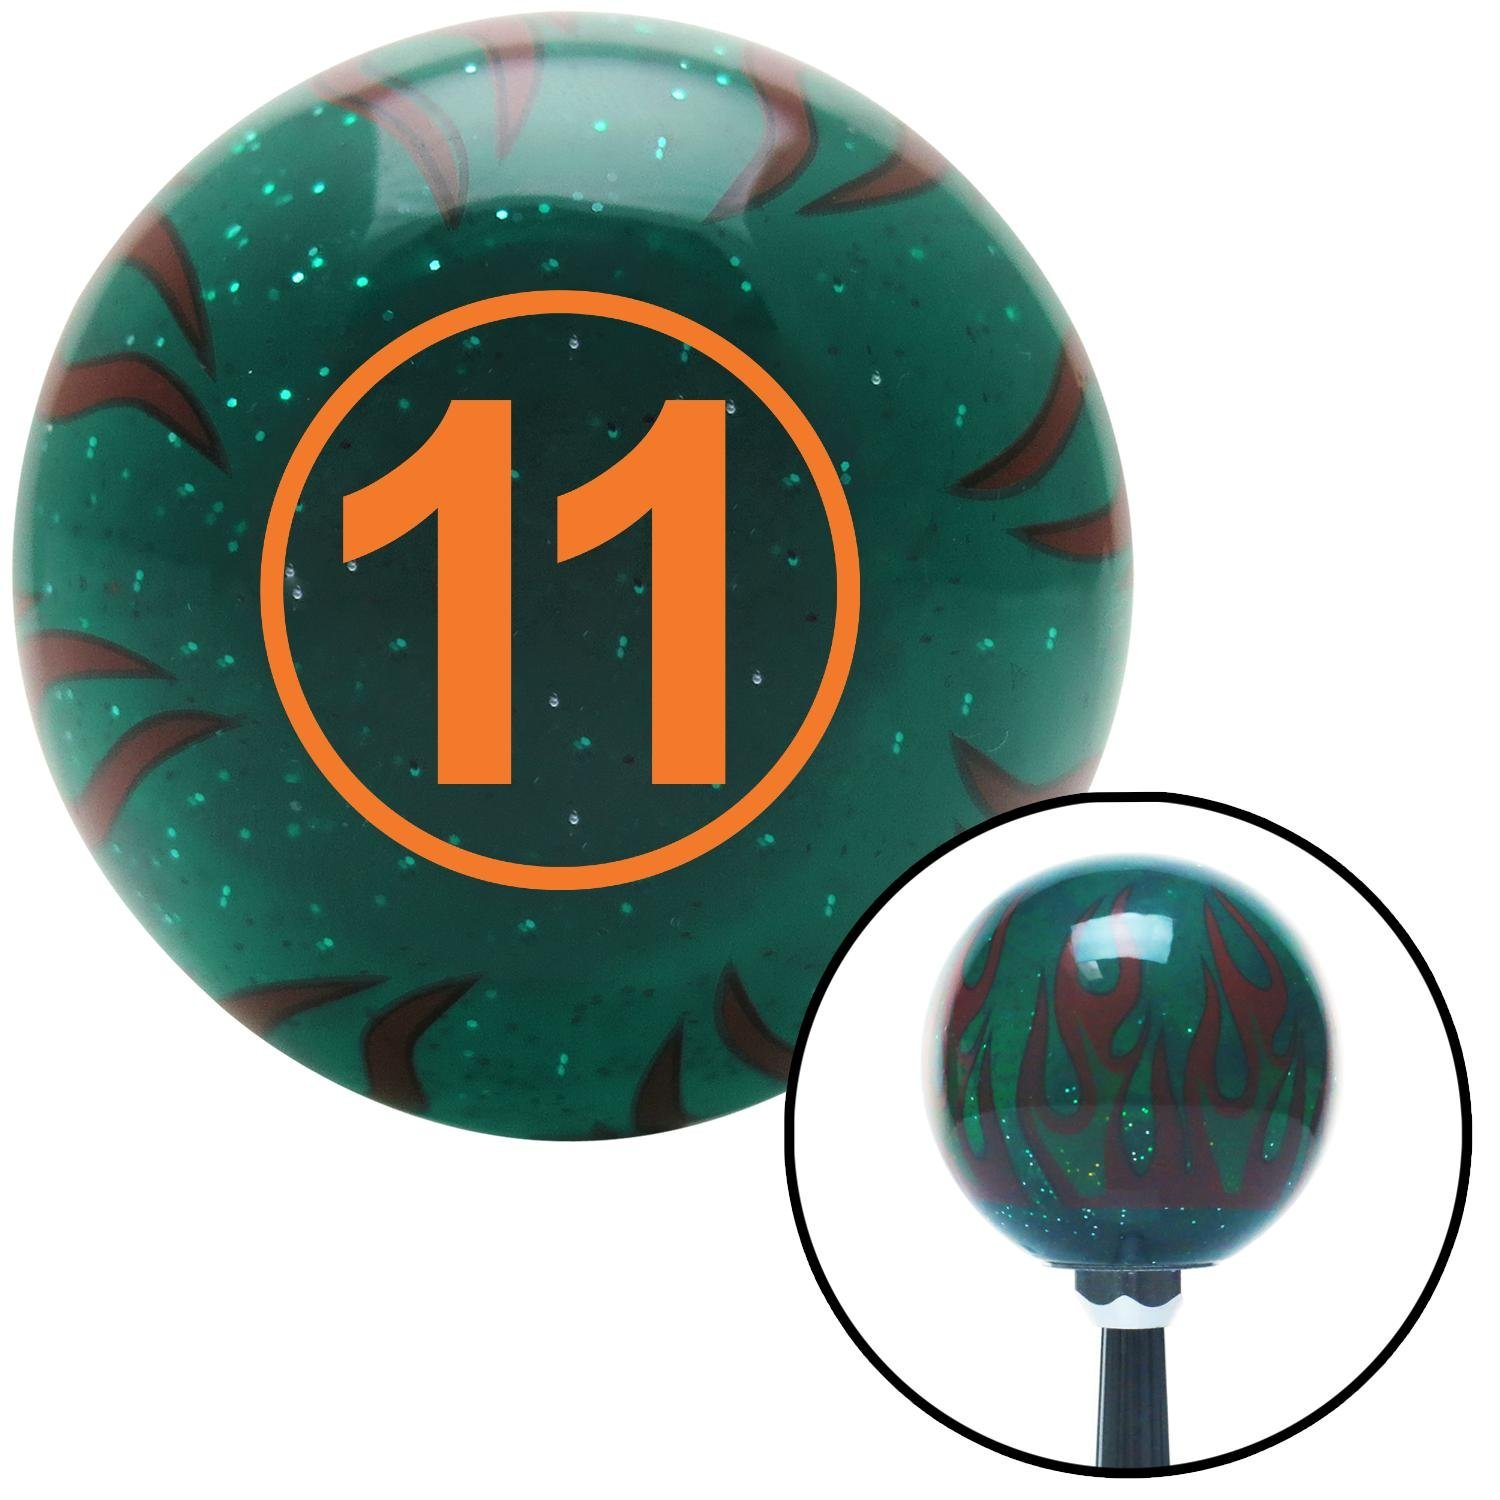 American Shifter 261138 Green Flame Metal Flake Shift Knob with M16 x 1.5 Insert Orange Ball #11